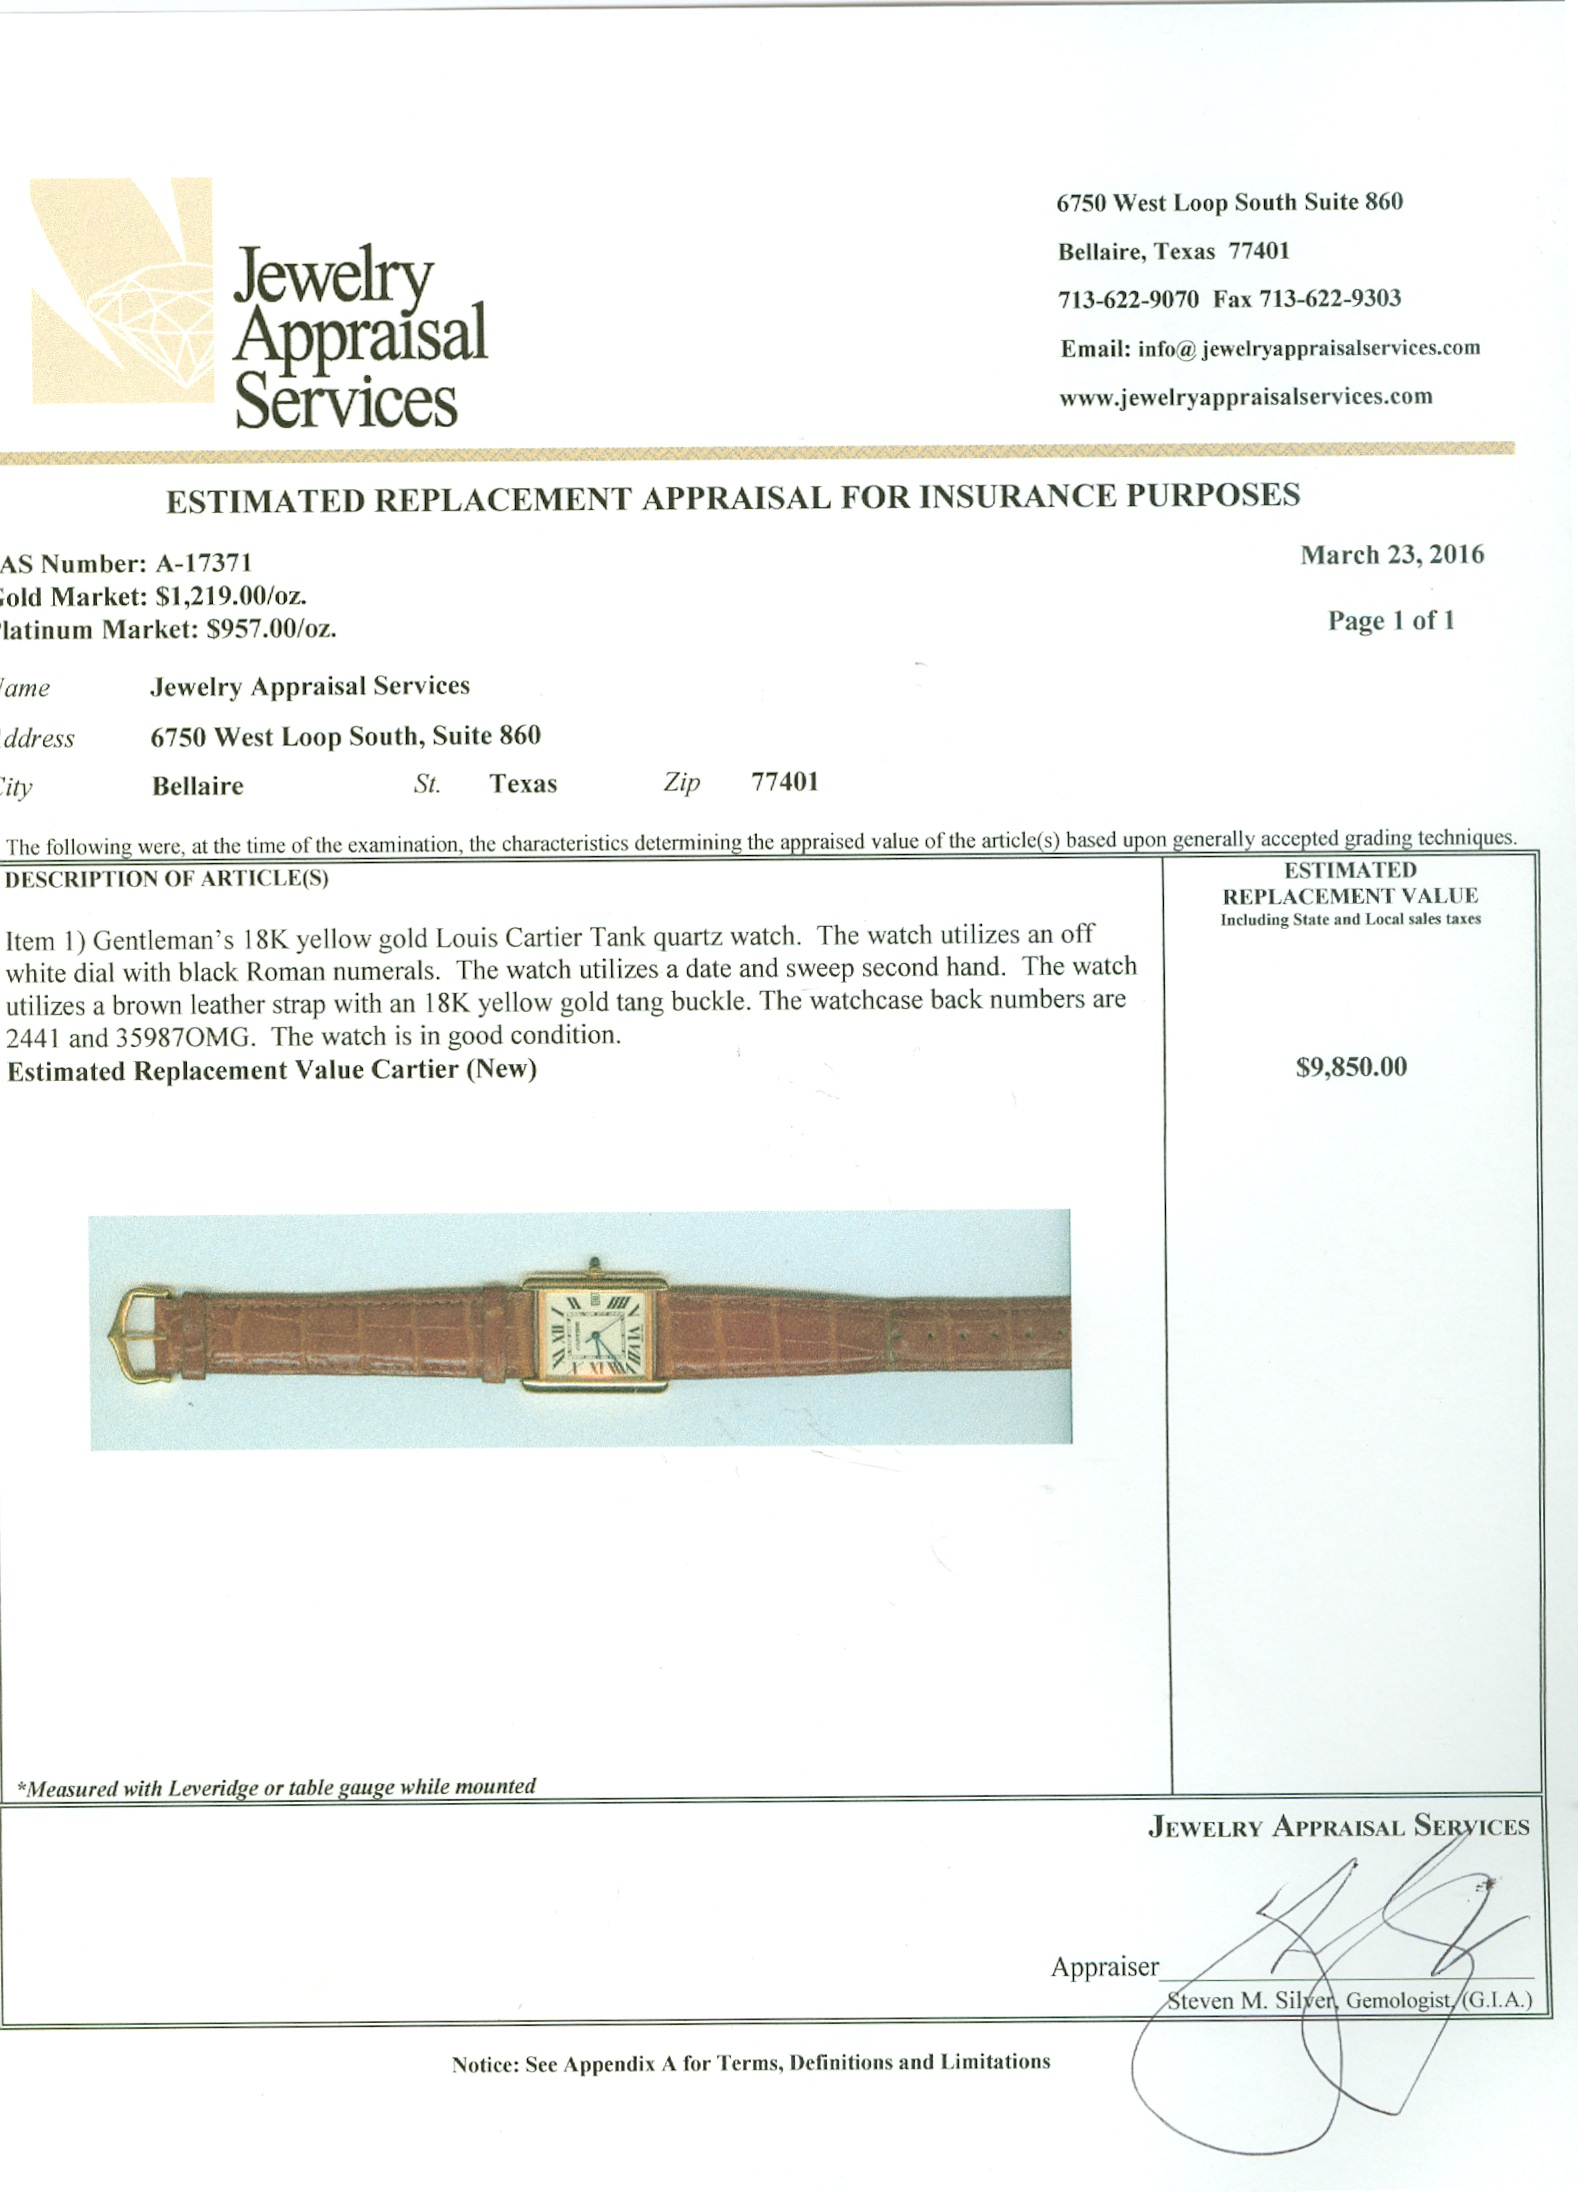 jewelry appraisal form template - watch report jewelry appraisal services